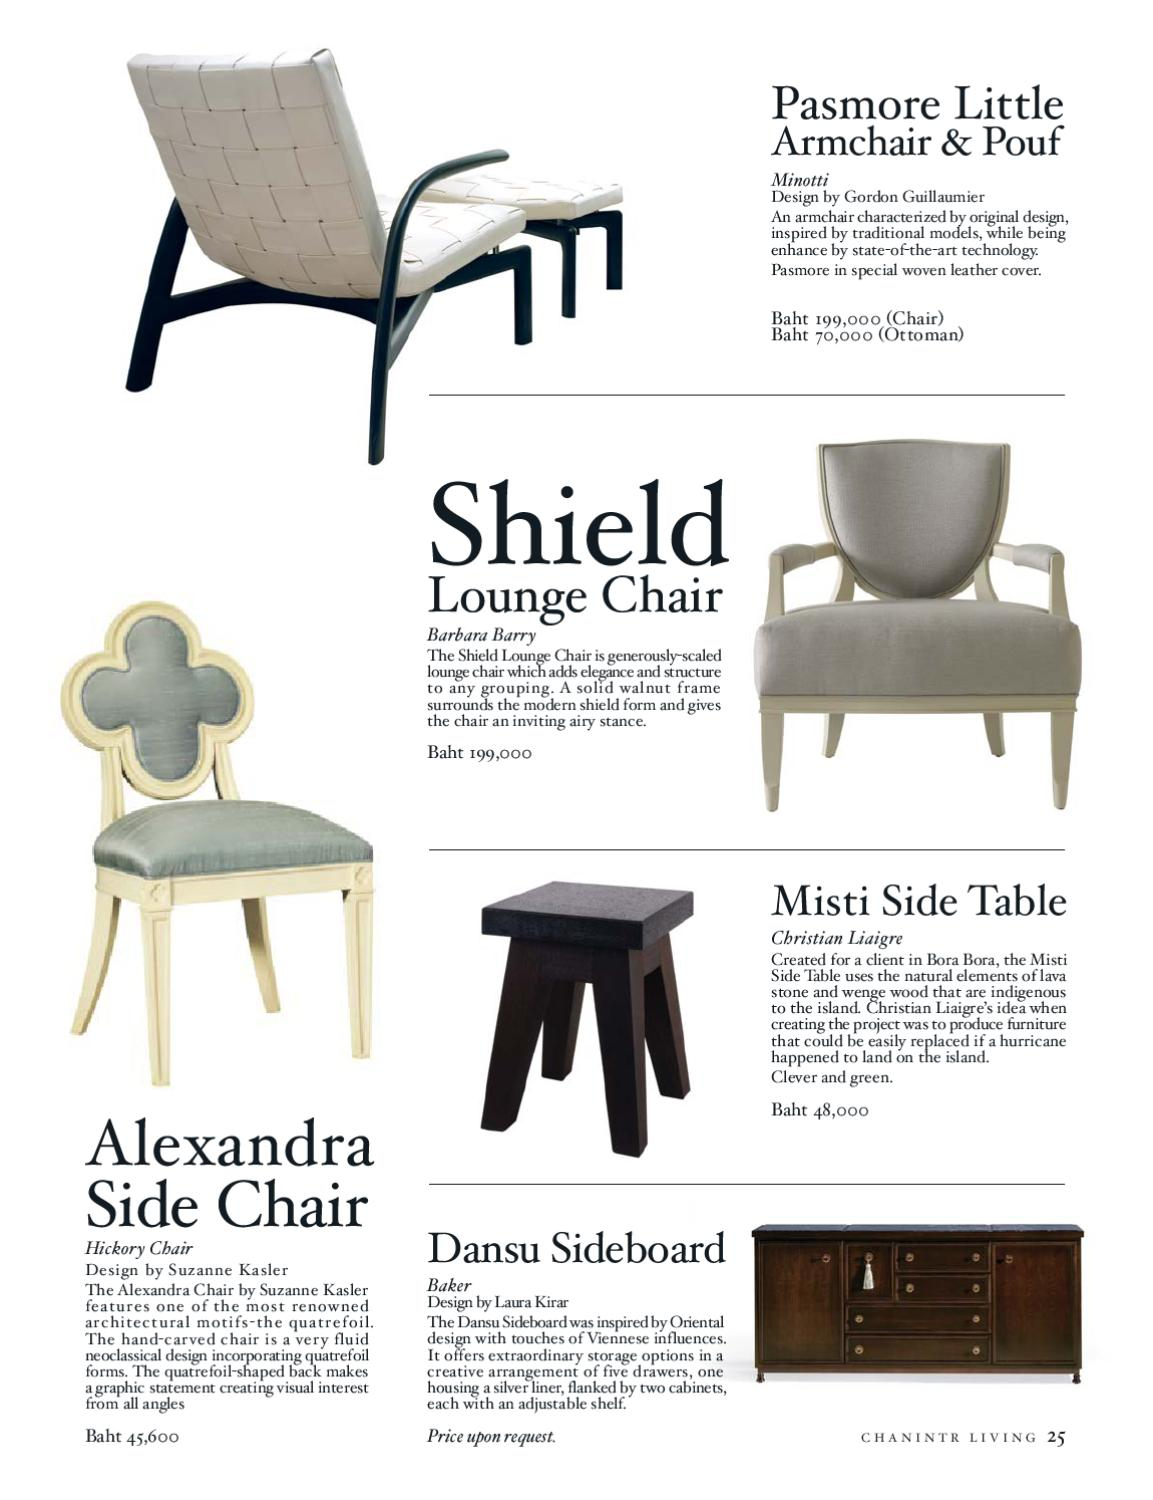 Chanintr Living Spring 2011 By Chanintr Living   Issuu